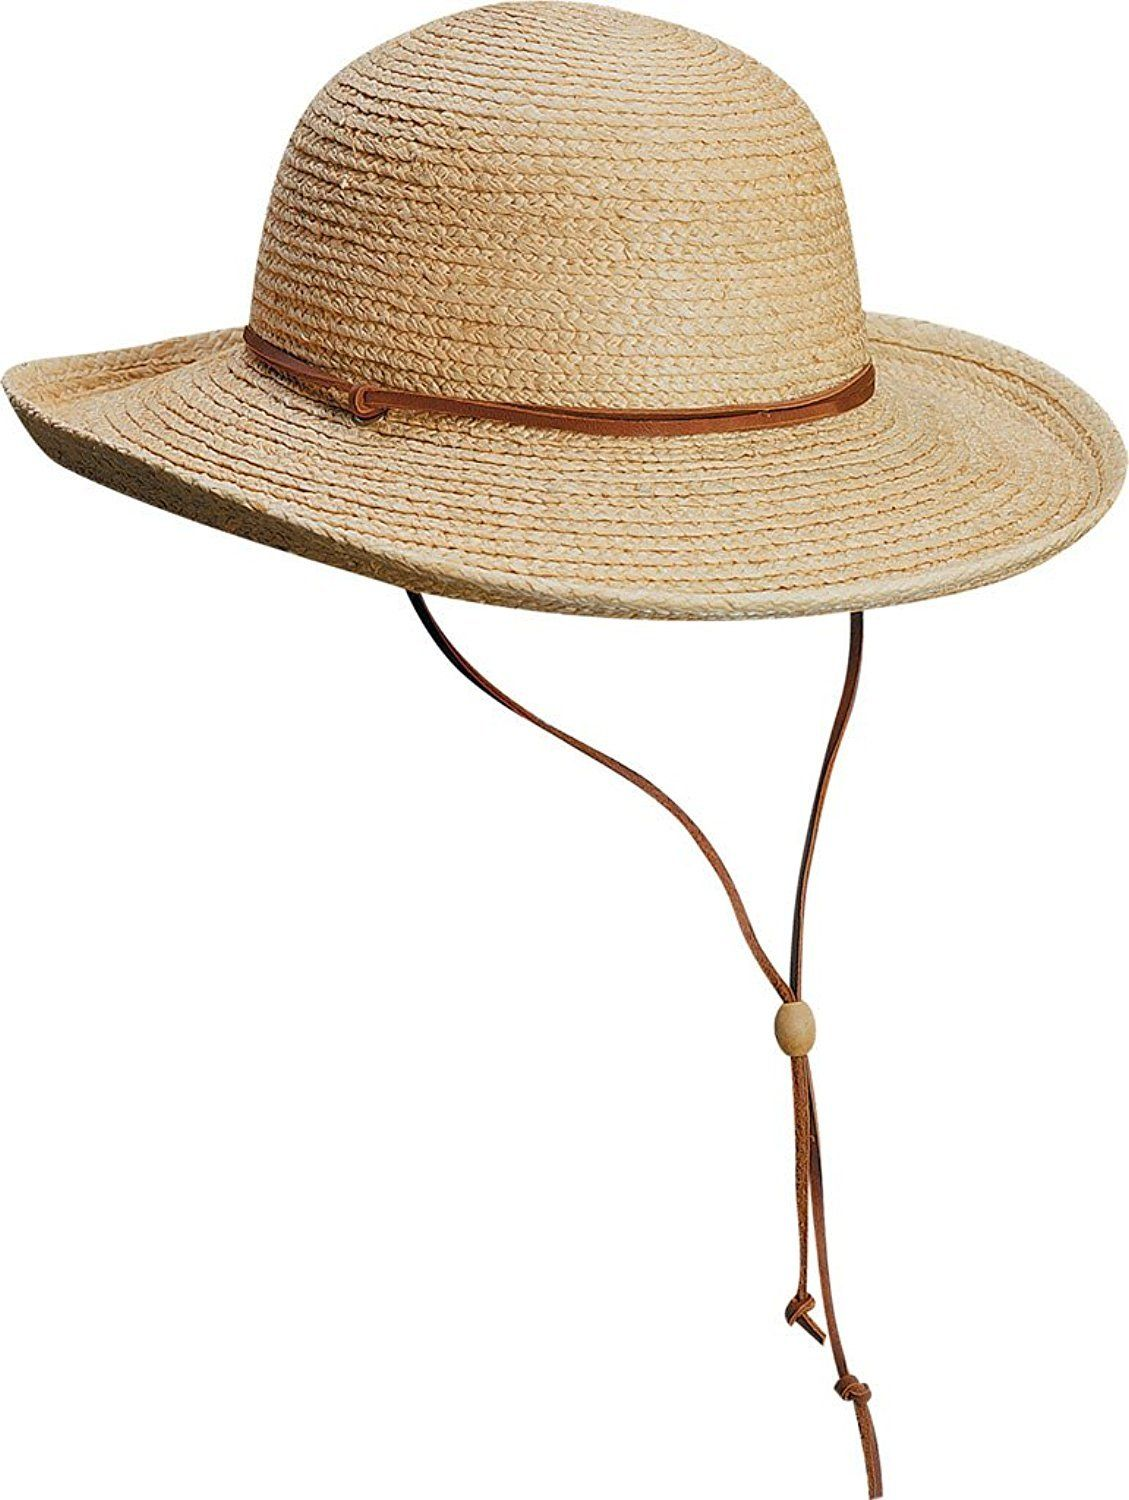 d43c47df567 Scala LR113 Raffia Braid Sunhat with Leather Chin Cord in 2018 ...